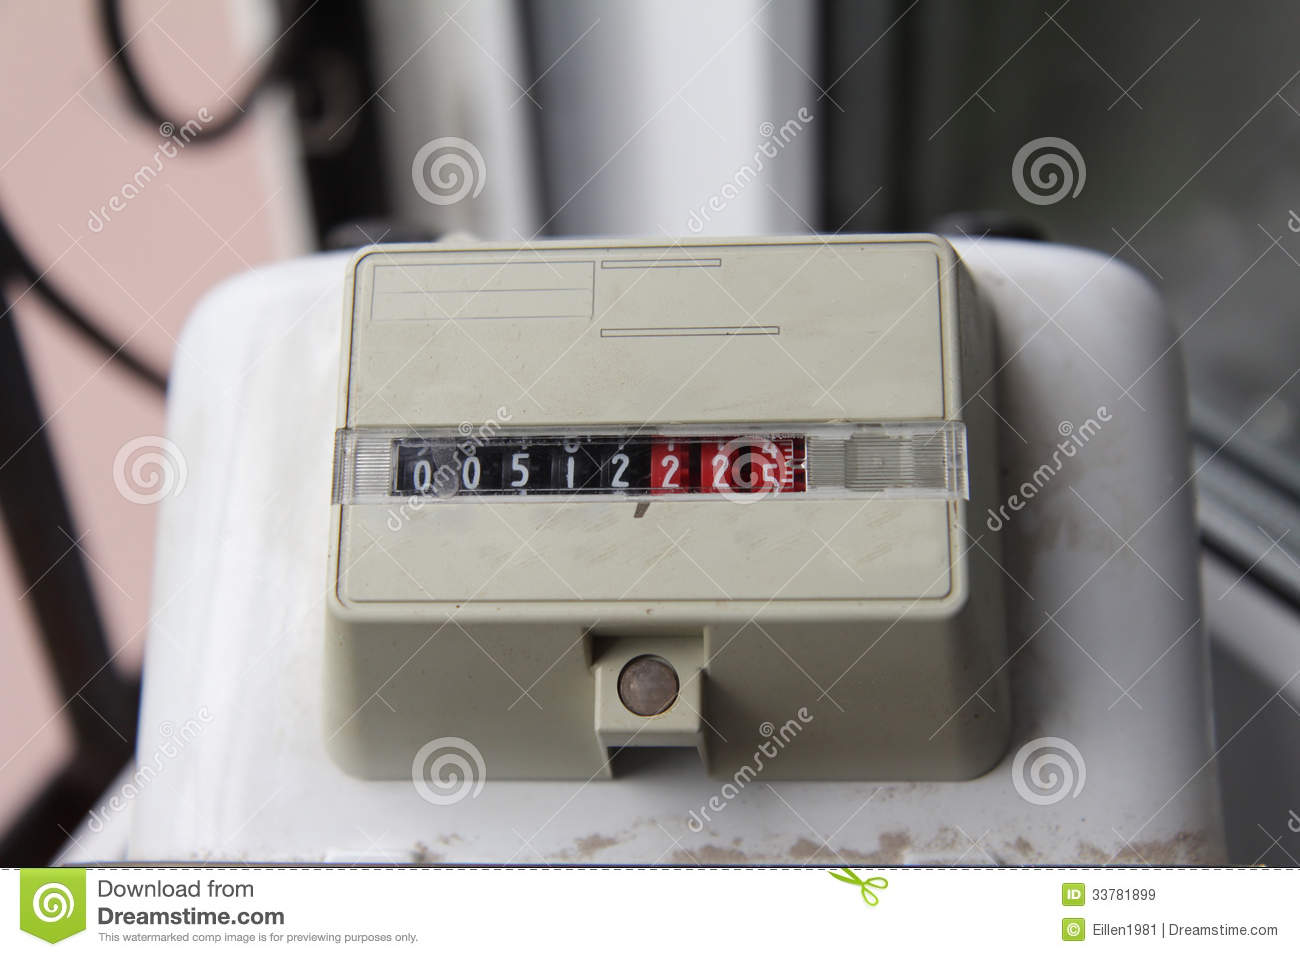 how to turn on gas meter at home